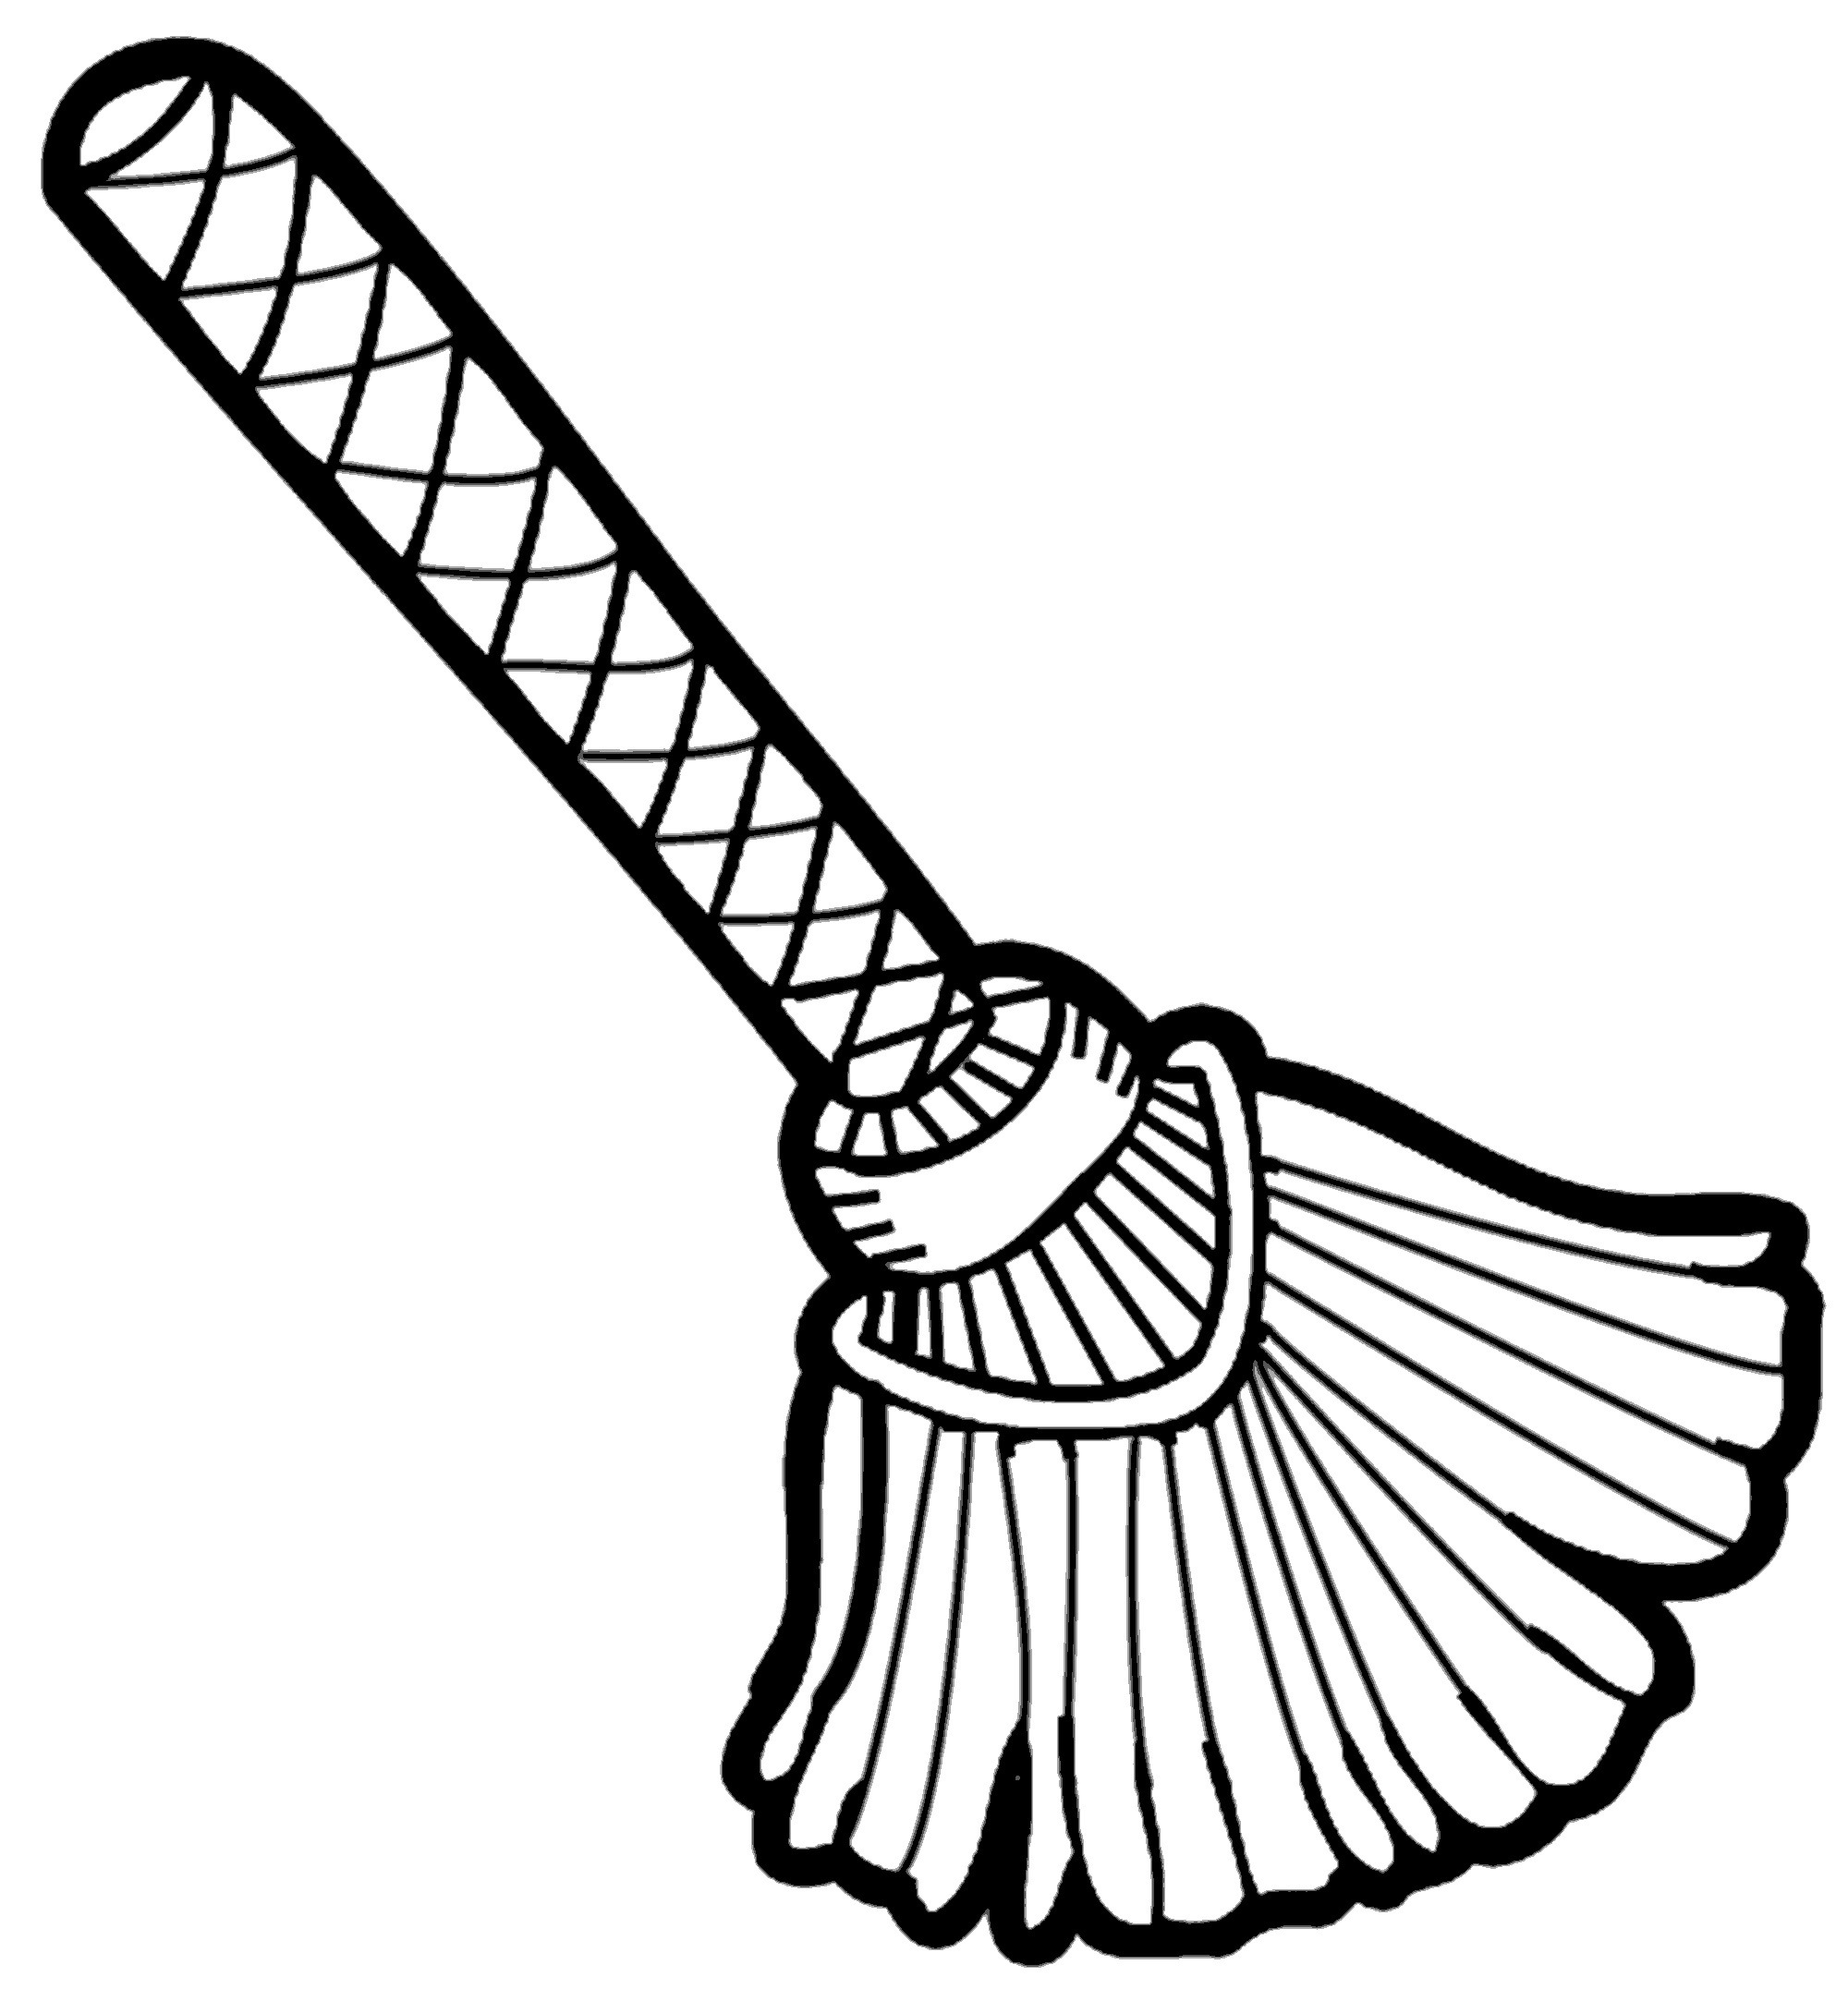 Indian Broom Clipart Black And White.